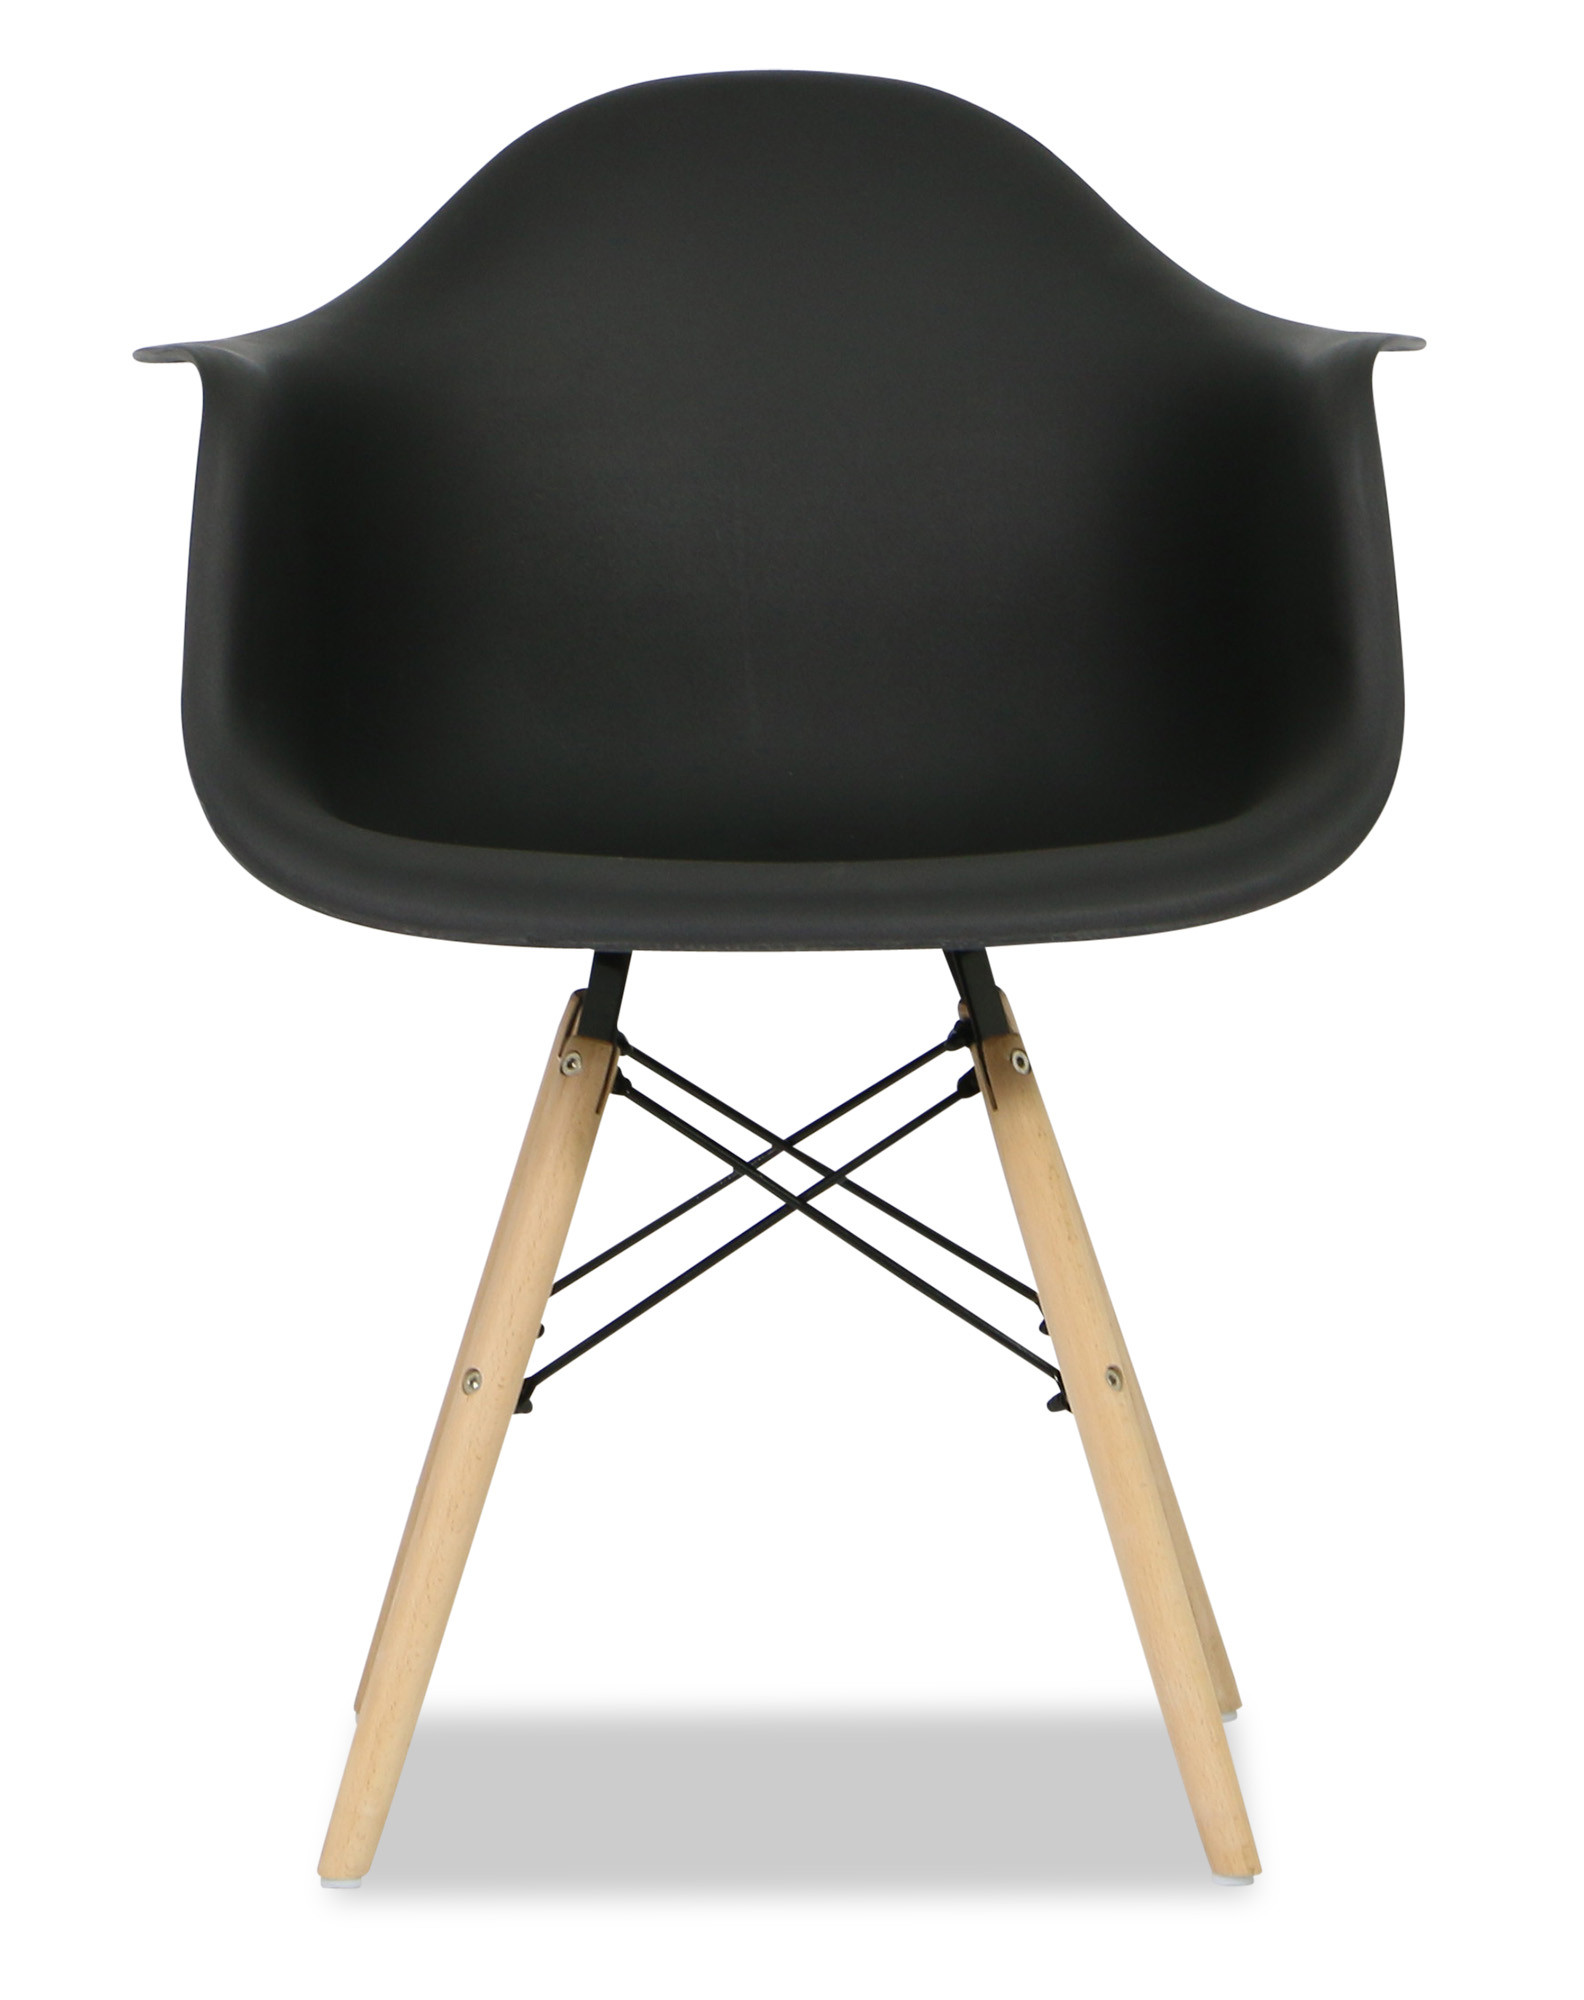 Eames replica designer arm chair black armchairs for Imitation designer chairs